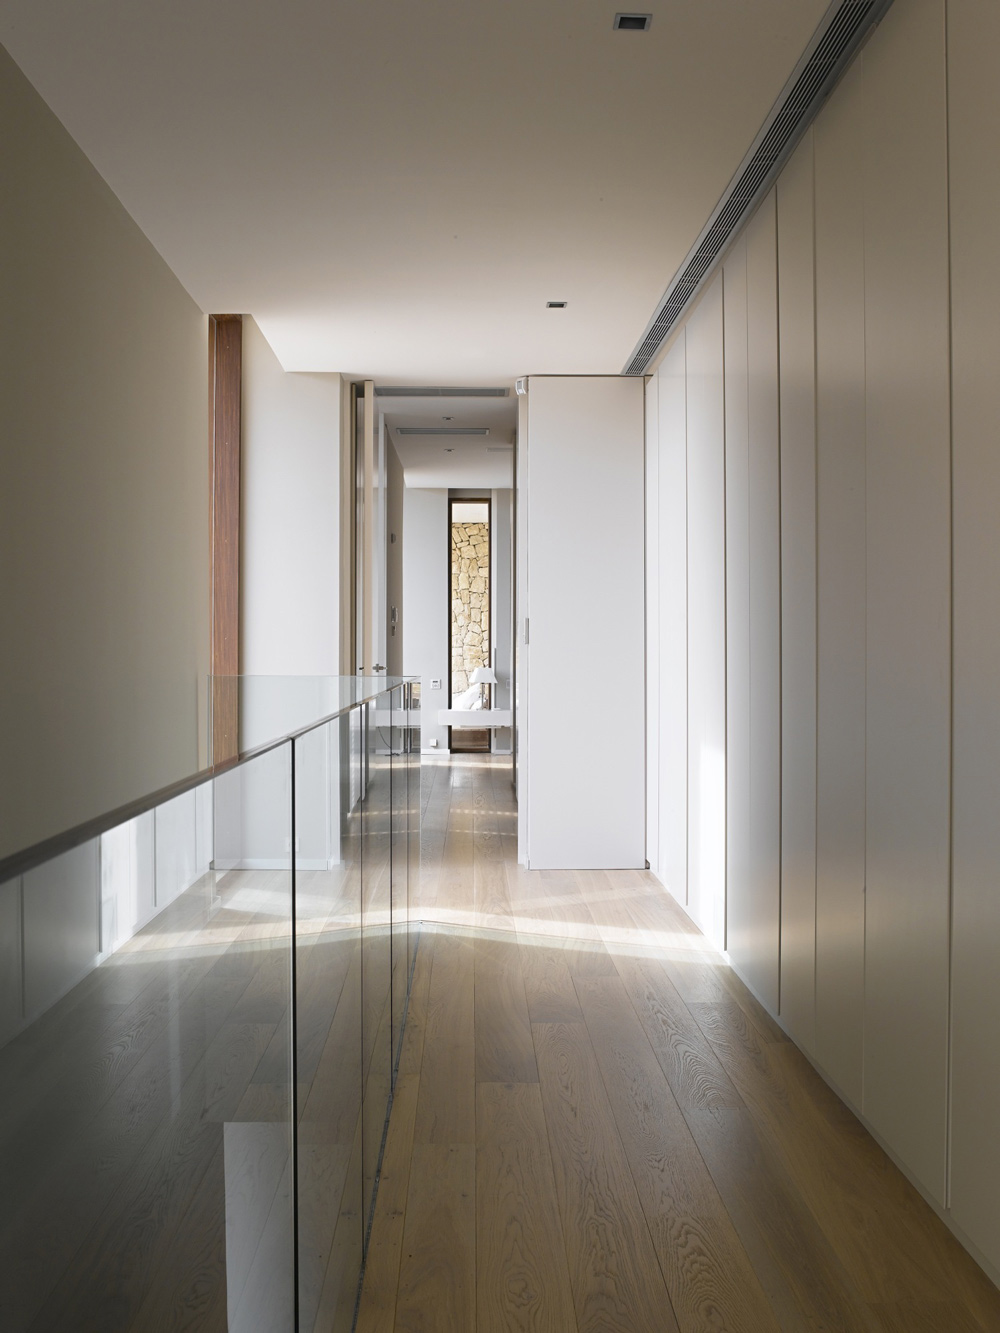 Glass Balustrading, Hallway, Contemporary Home in Monasterios, Spain